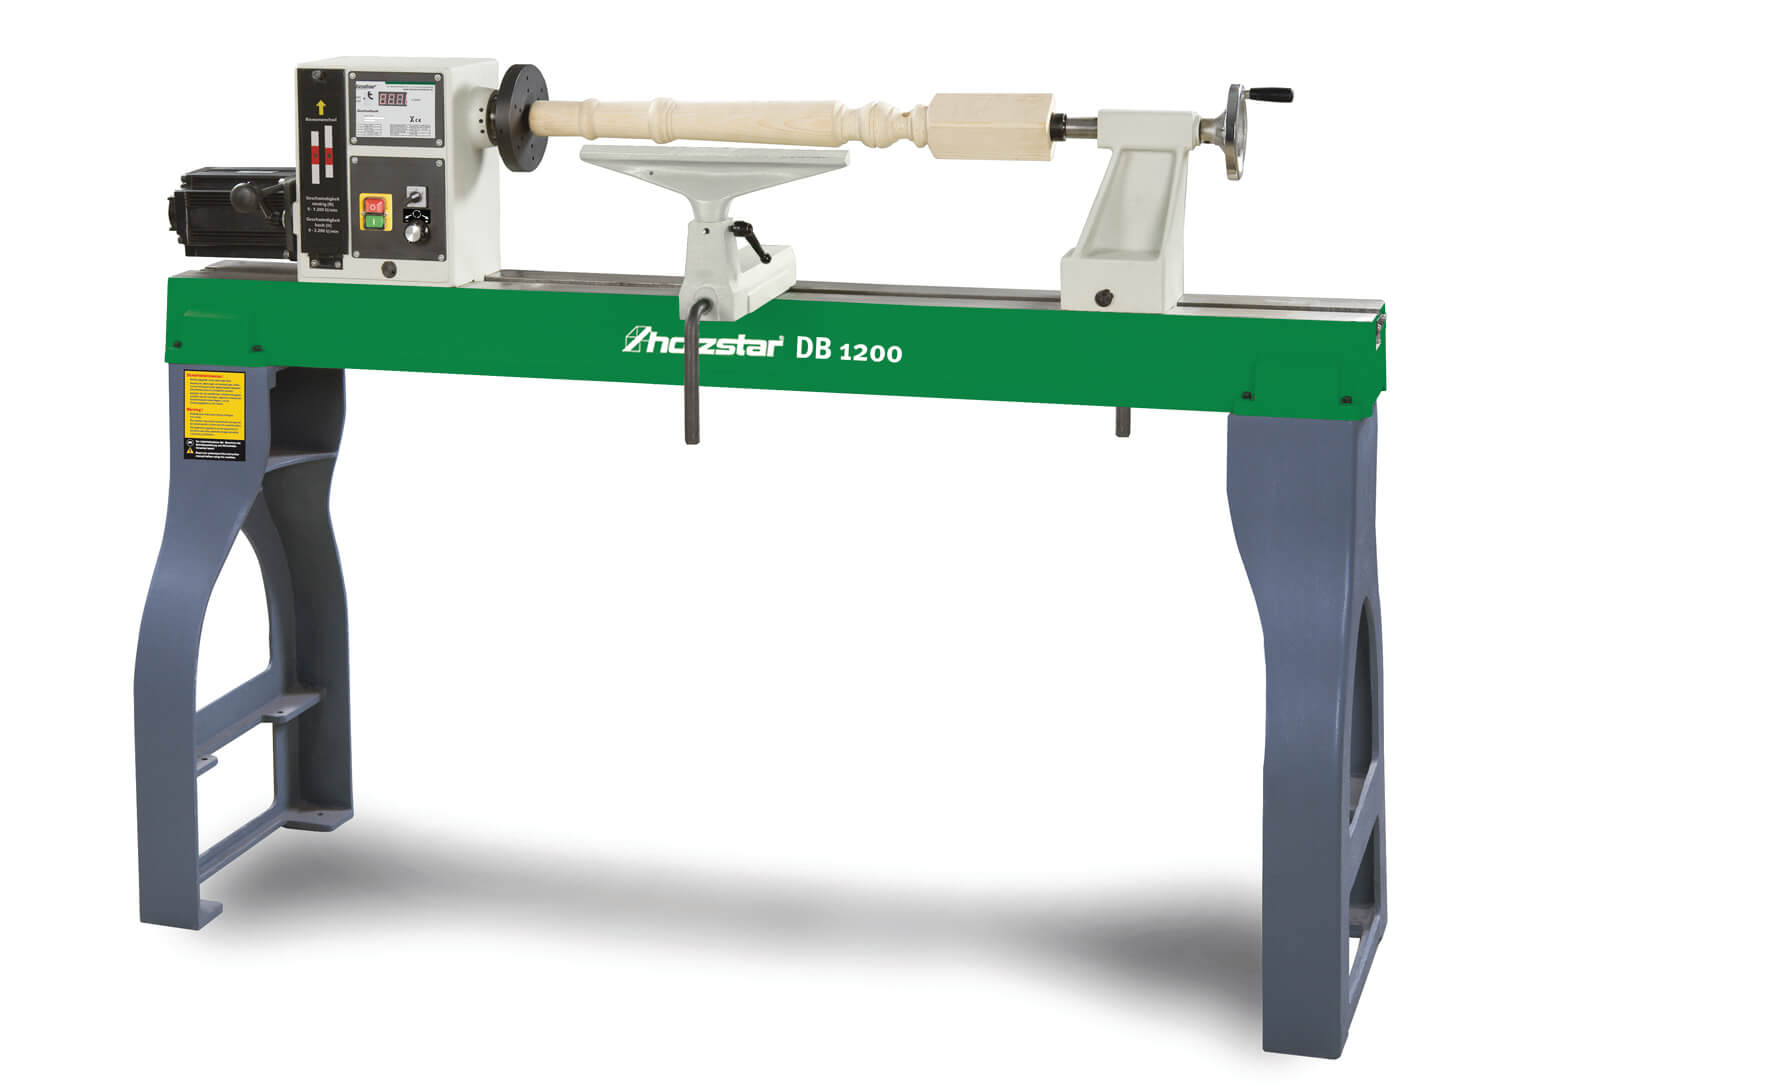 Holzstar Woodturning Lathe DB 1202